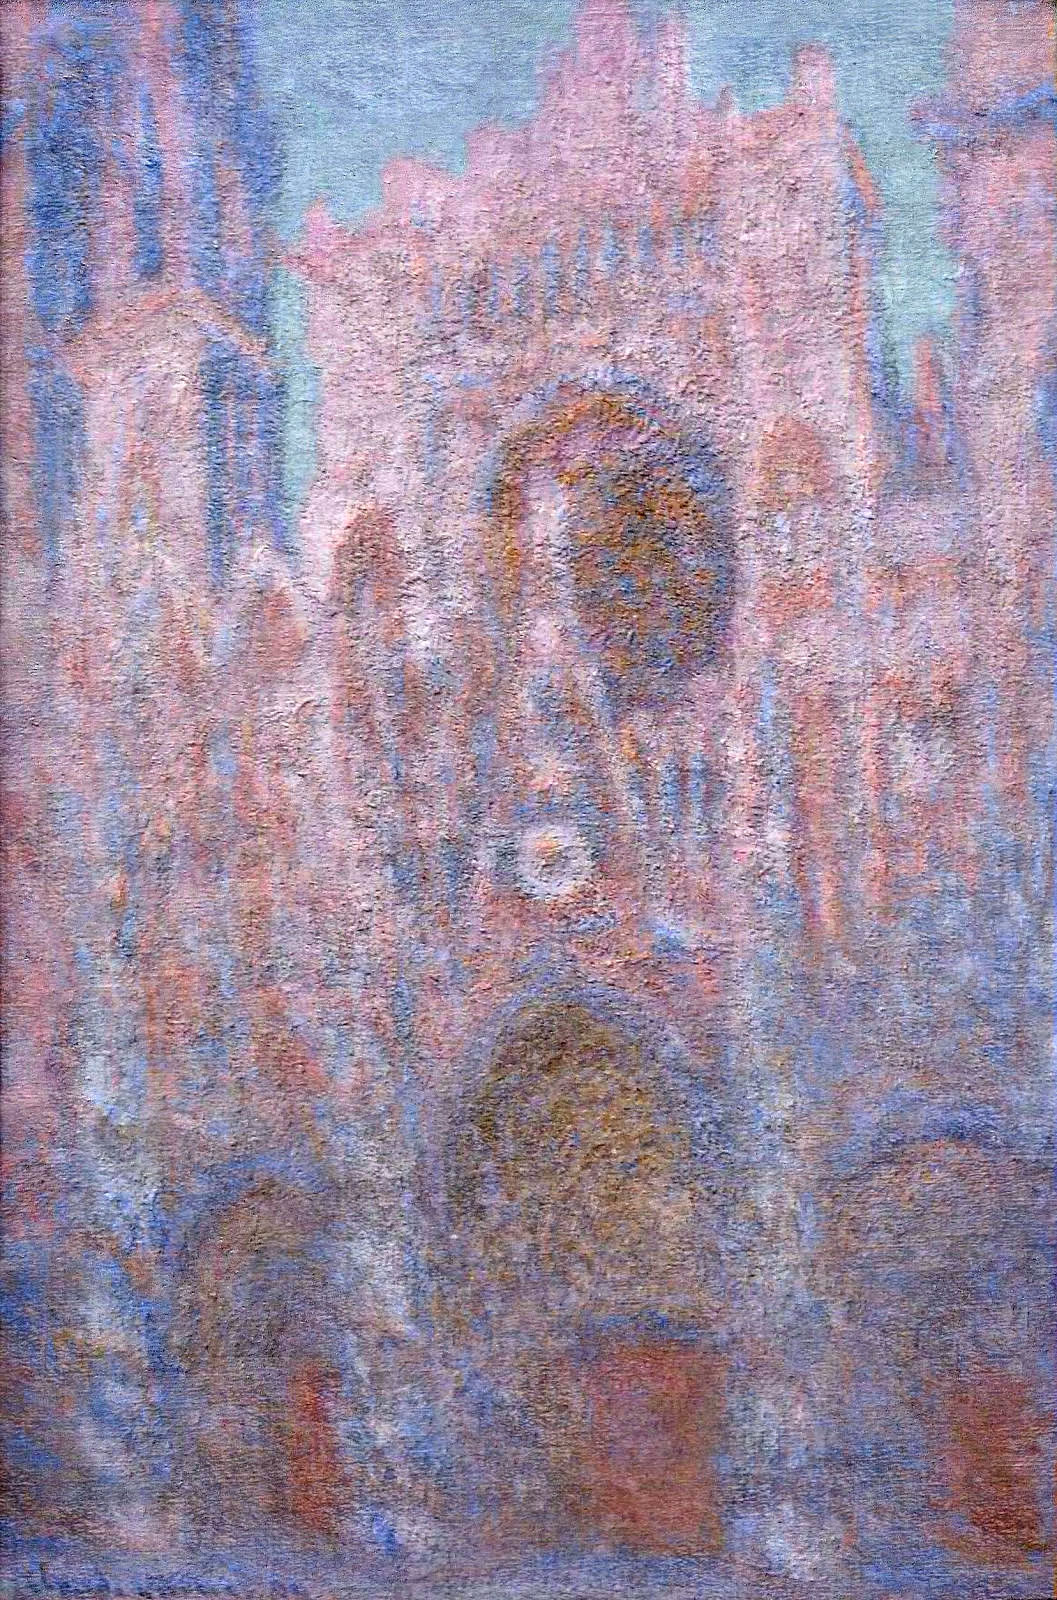 Rouen Cathedral, Symphony in Grey and Rose 1894